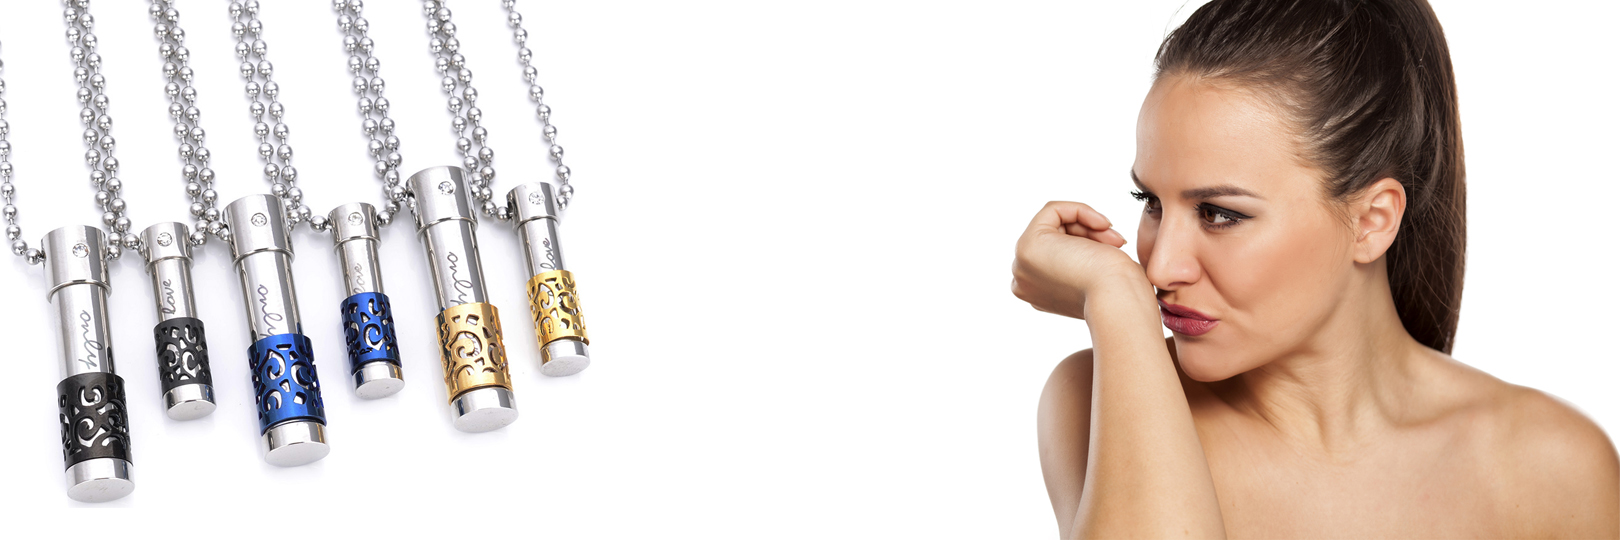 Perfume Bottle Necklace For Couples